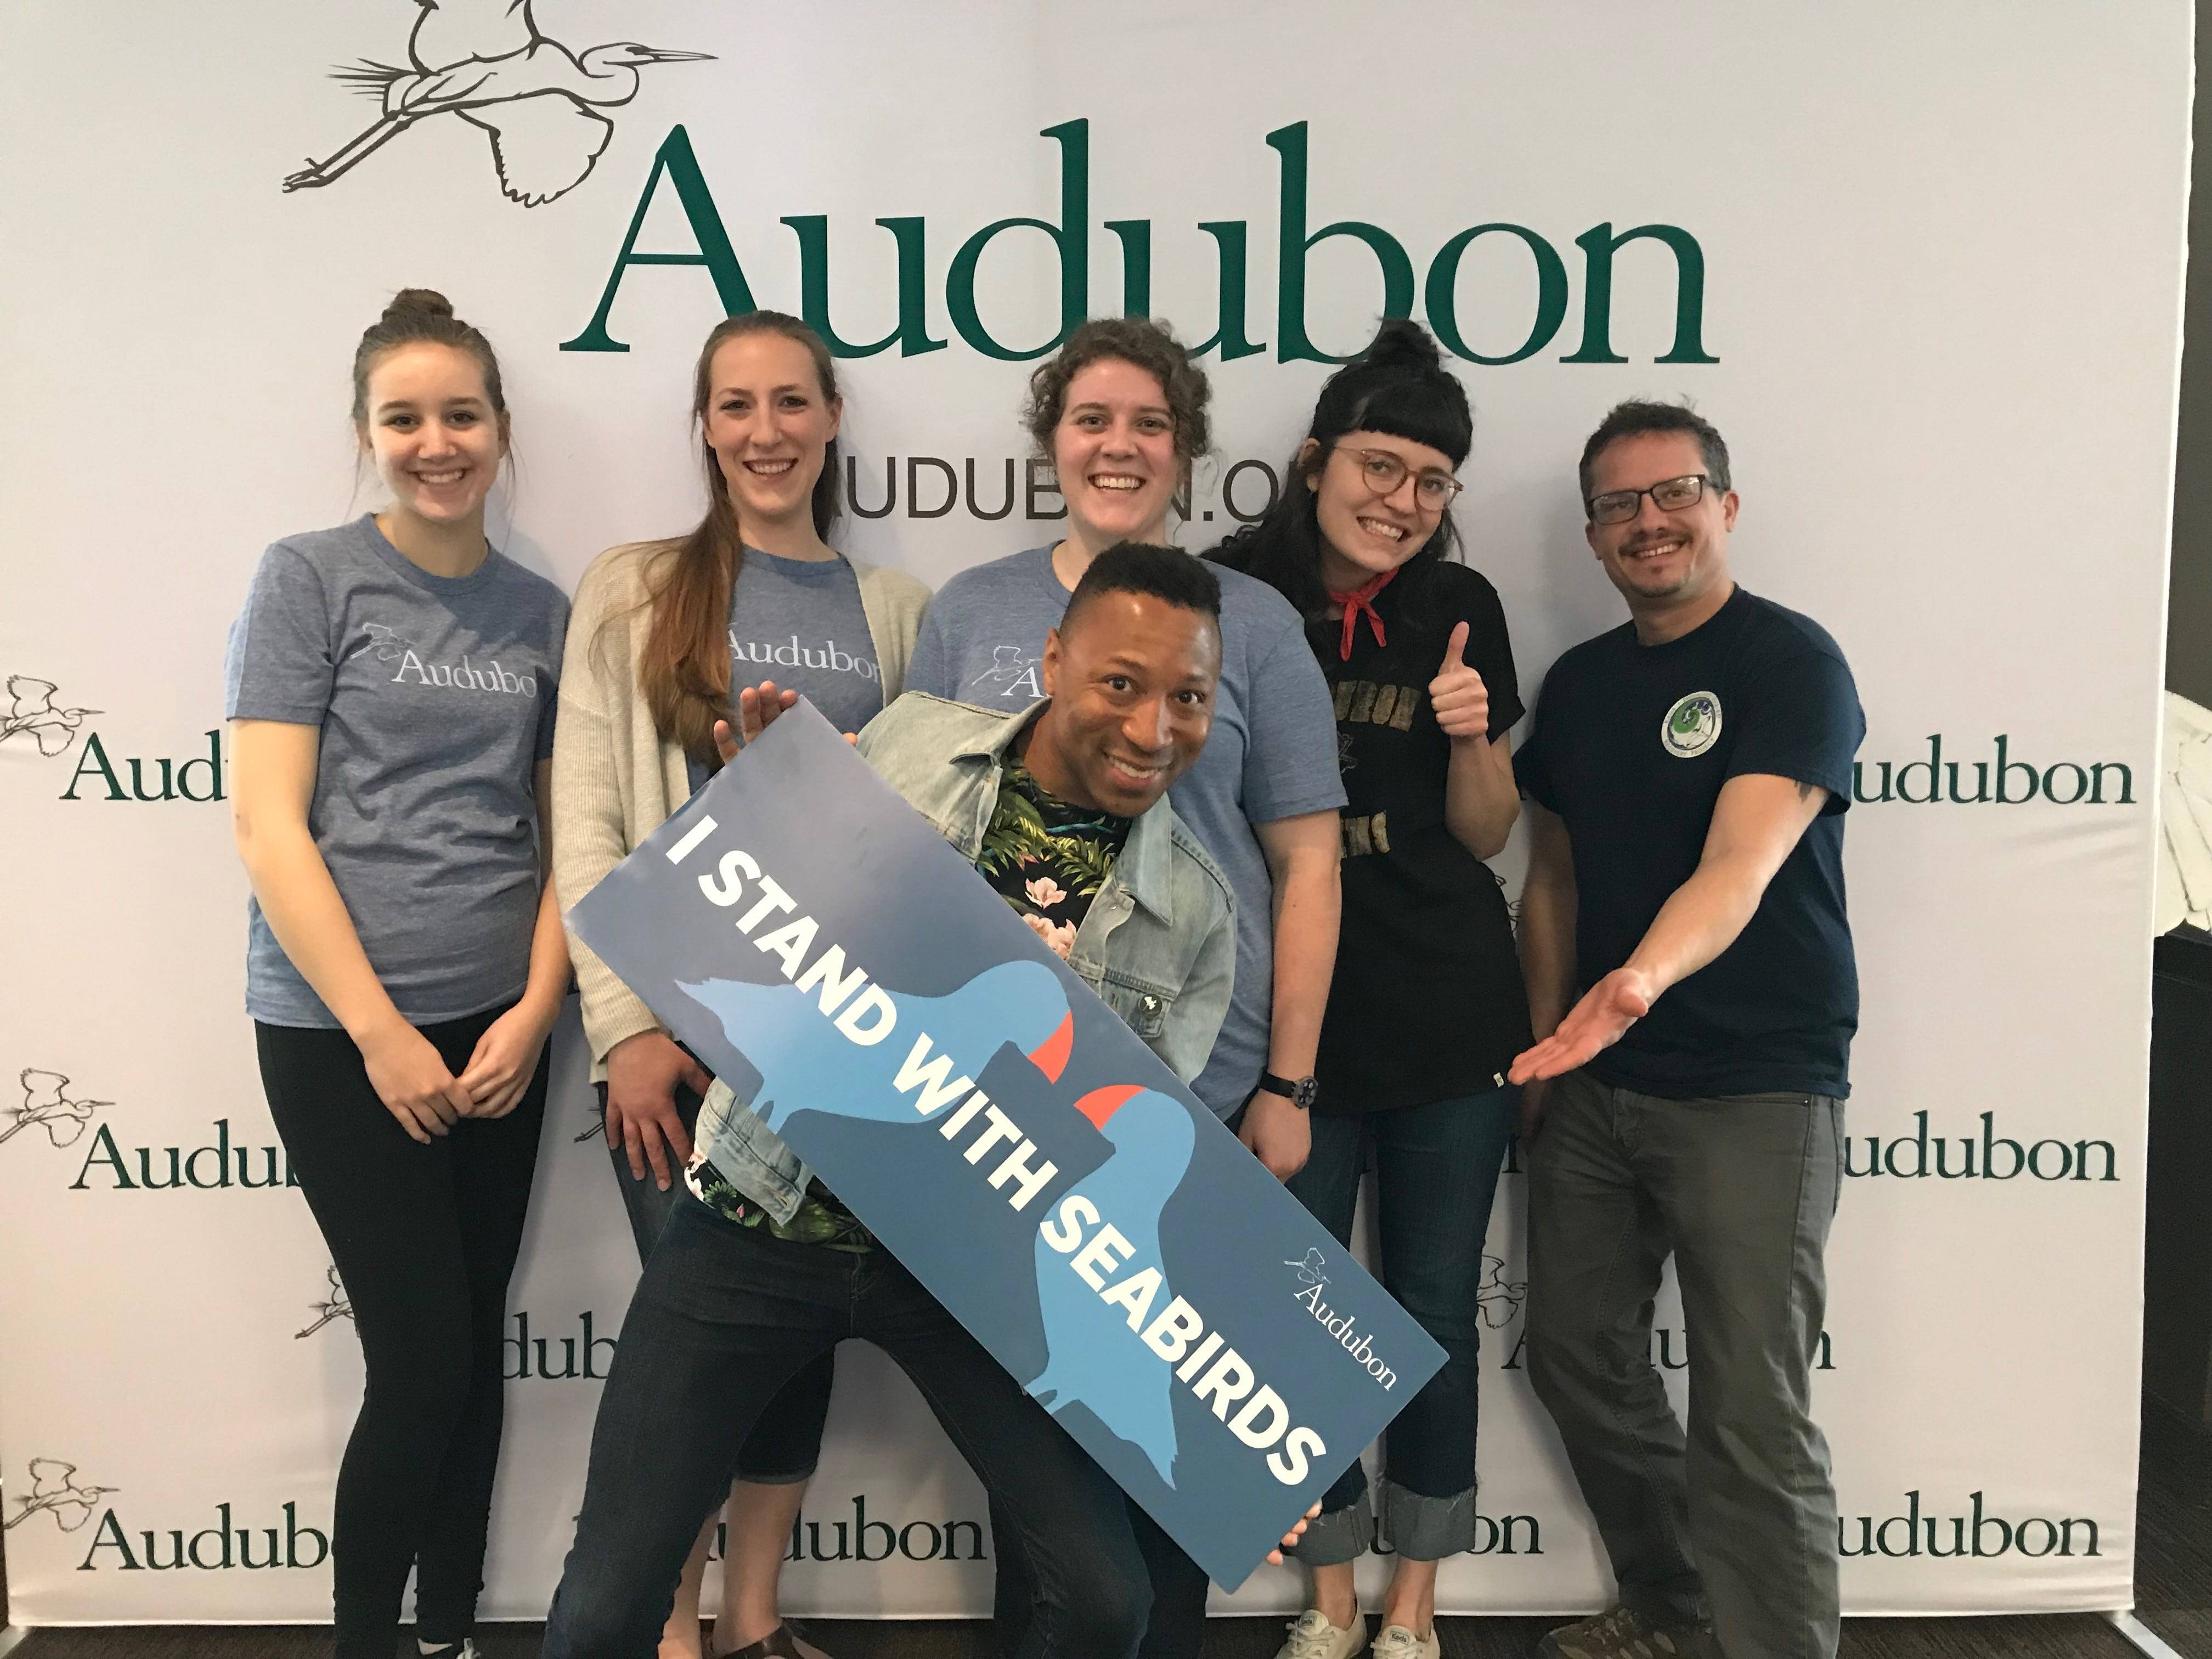 Green Bay Audubon chapter takes part in National Audubon D.C. Fly-In